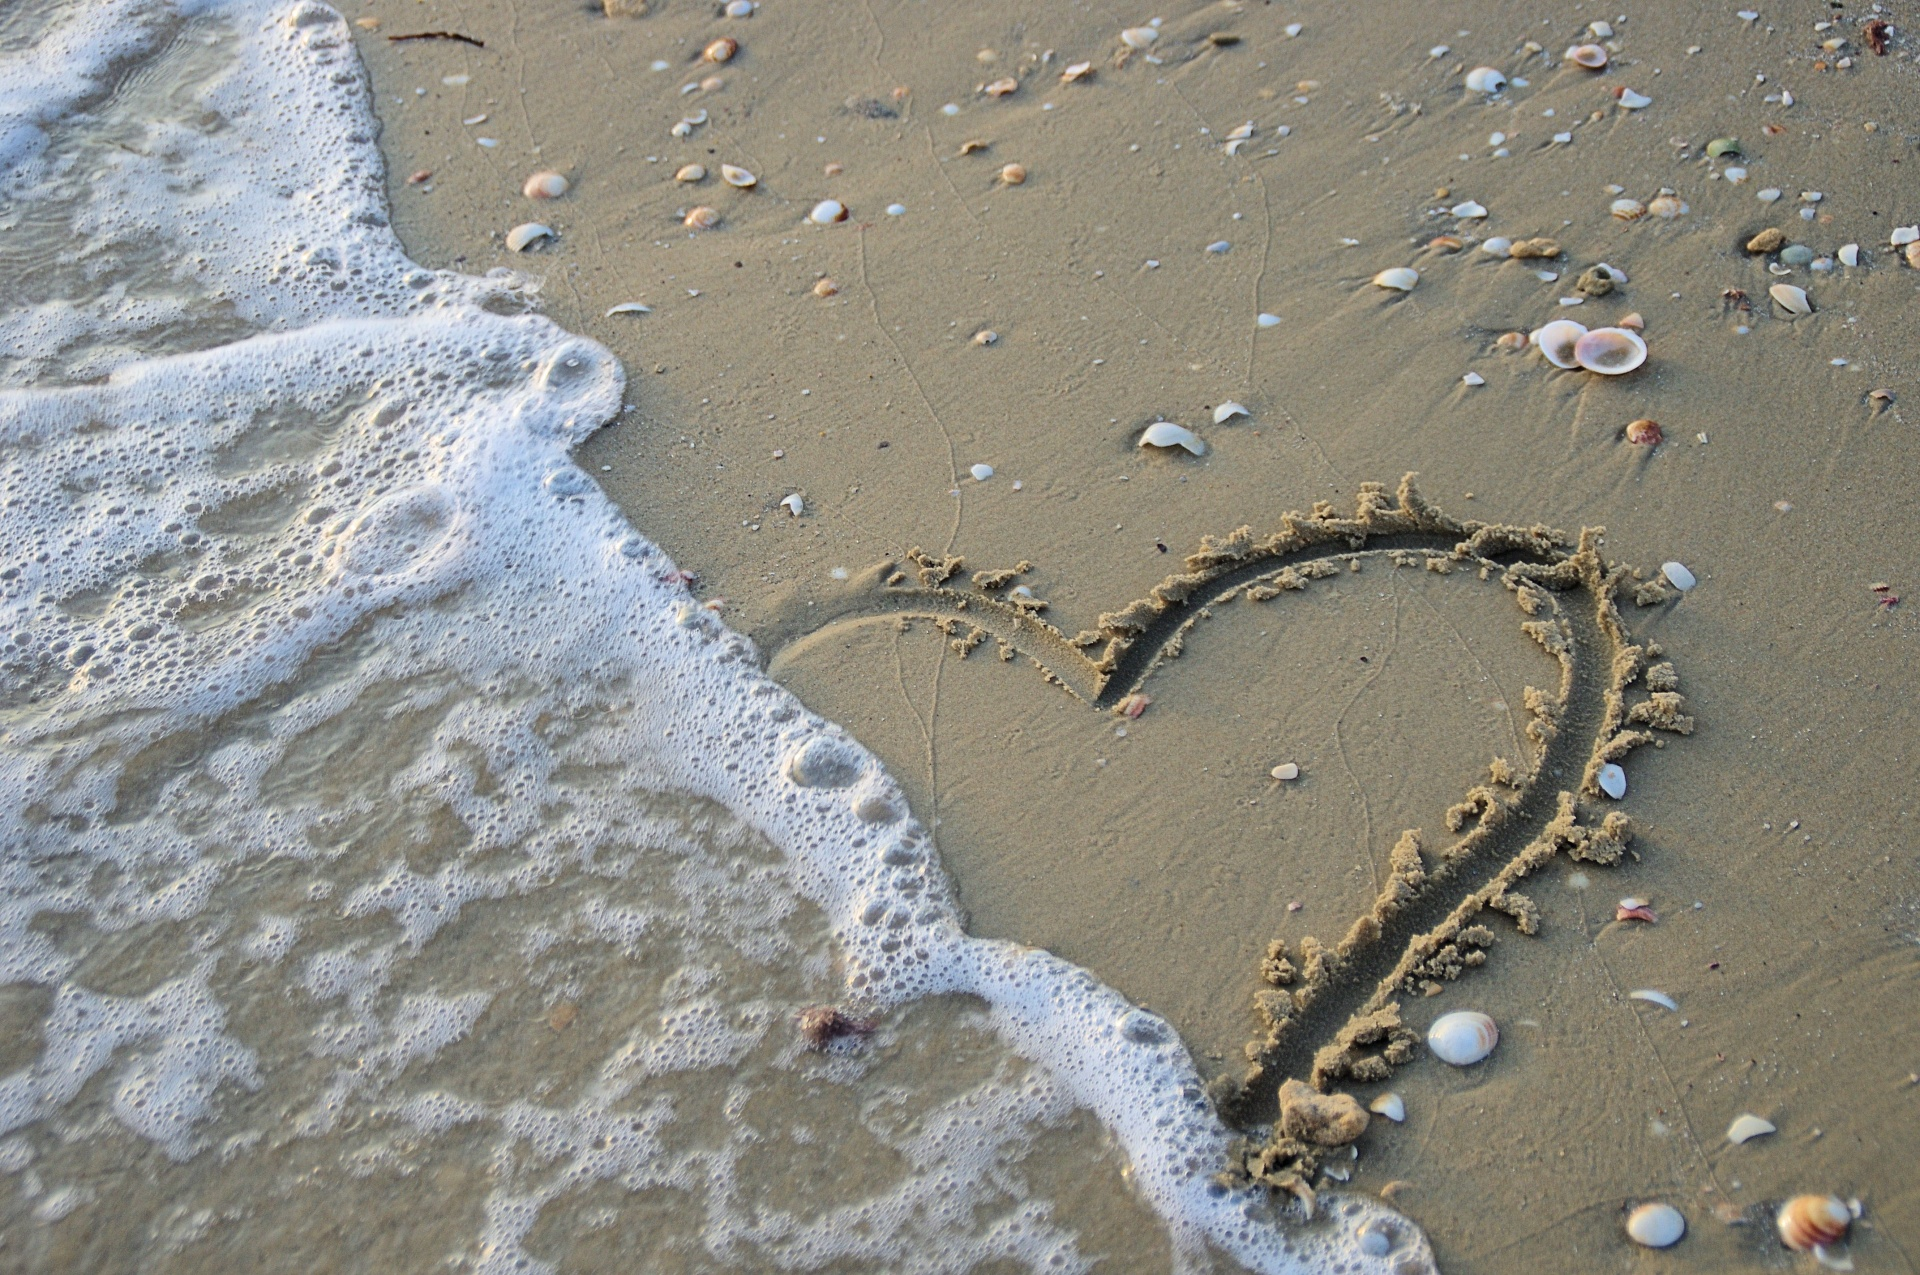 Wave washing out a heart drawn in the sand